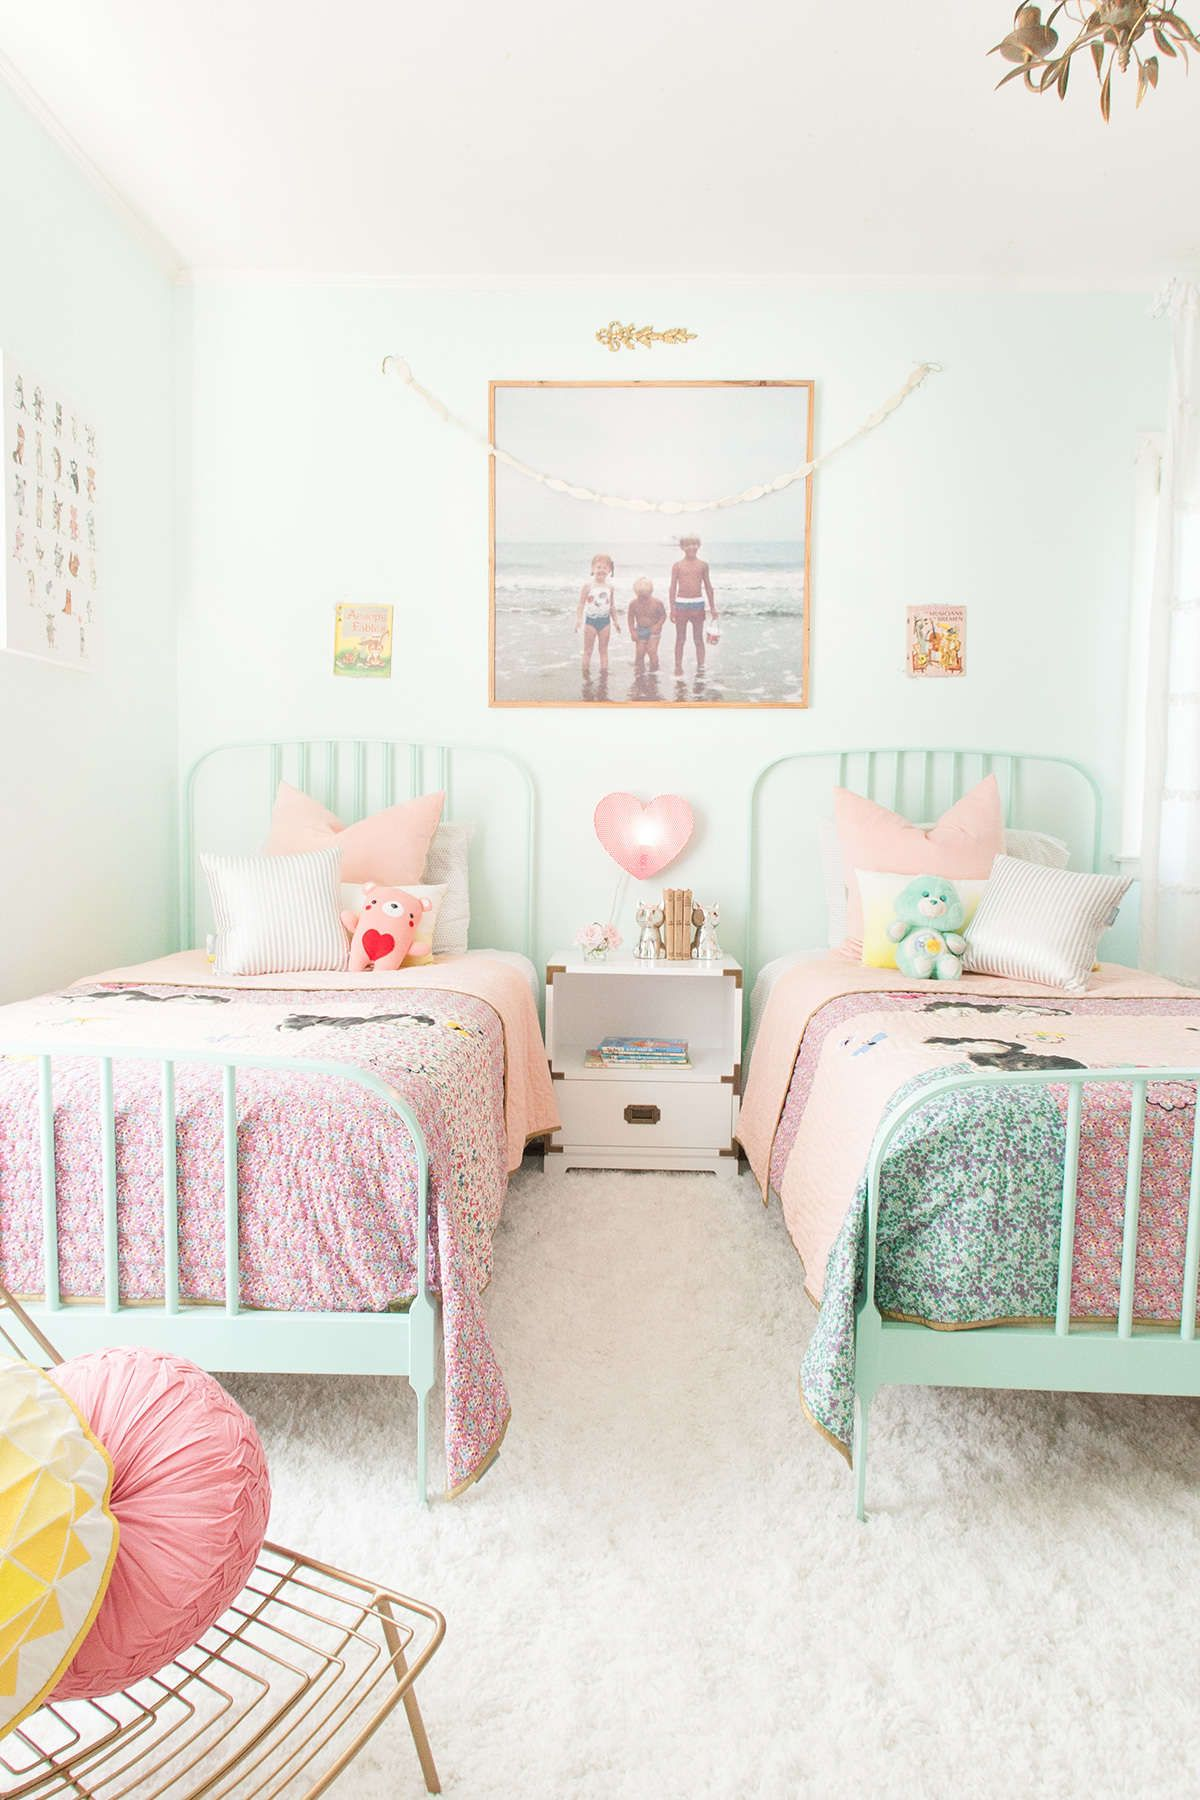 Shared Room Inspiration With The Land Of Nod Shared Girls Room